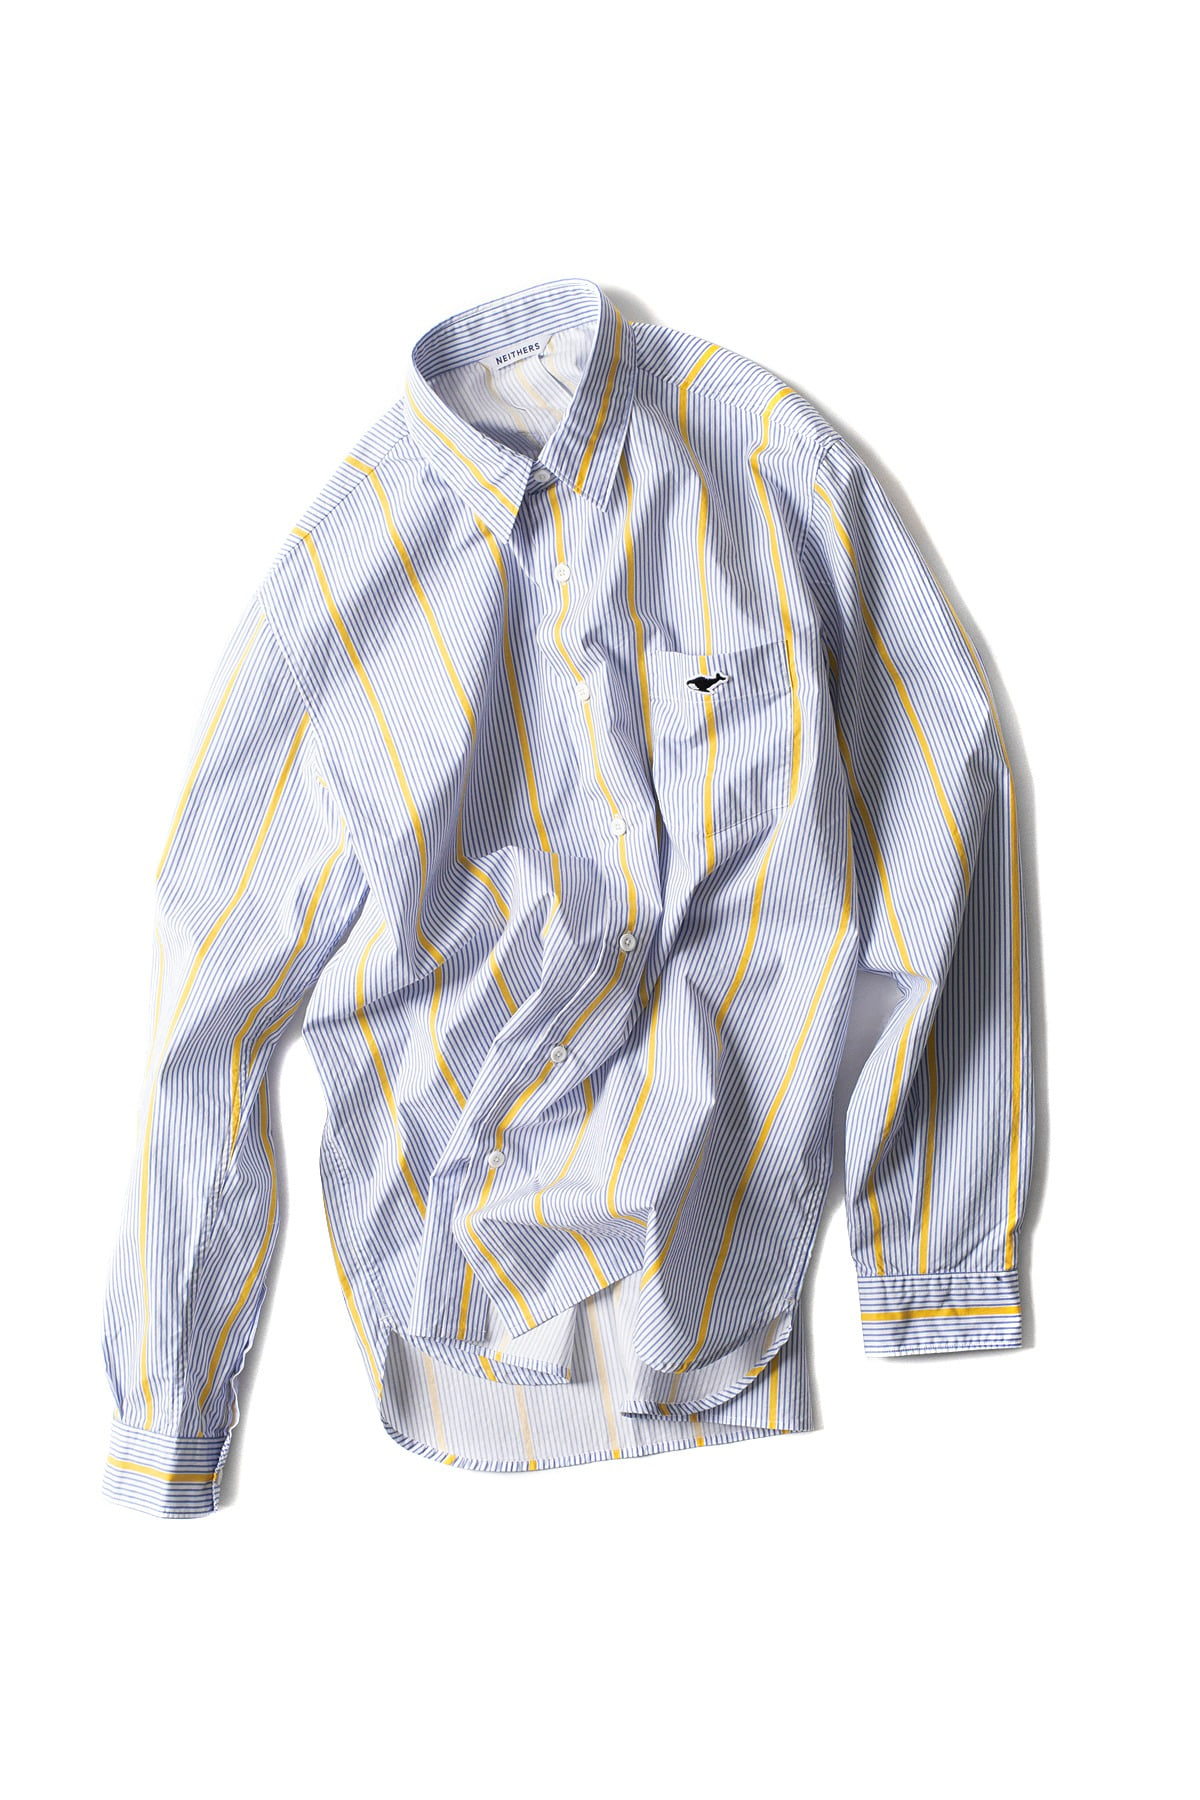 NEITHERS : Comfort Shirt (Yellow)